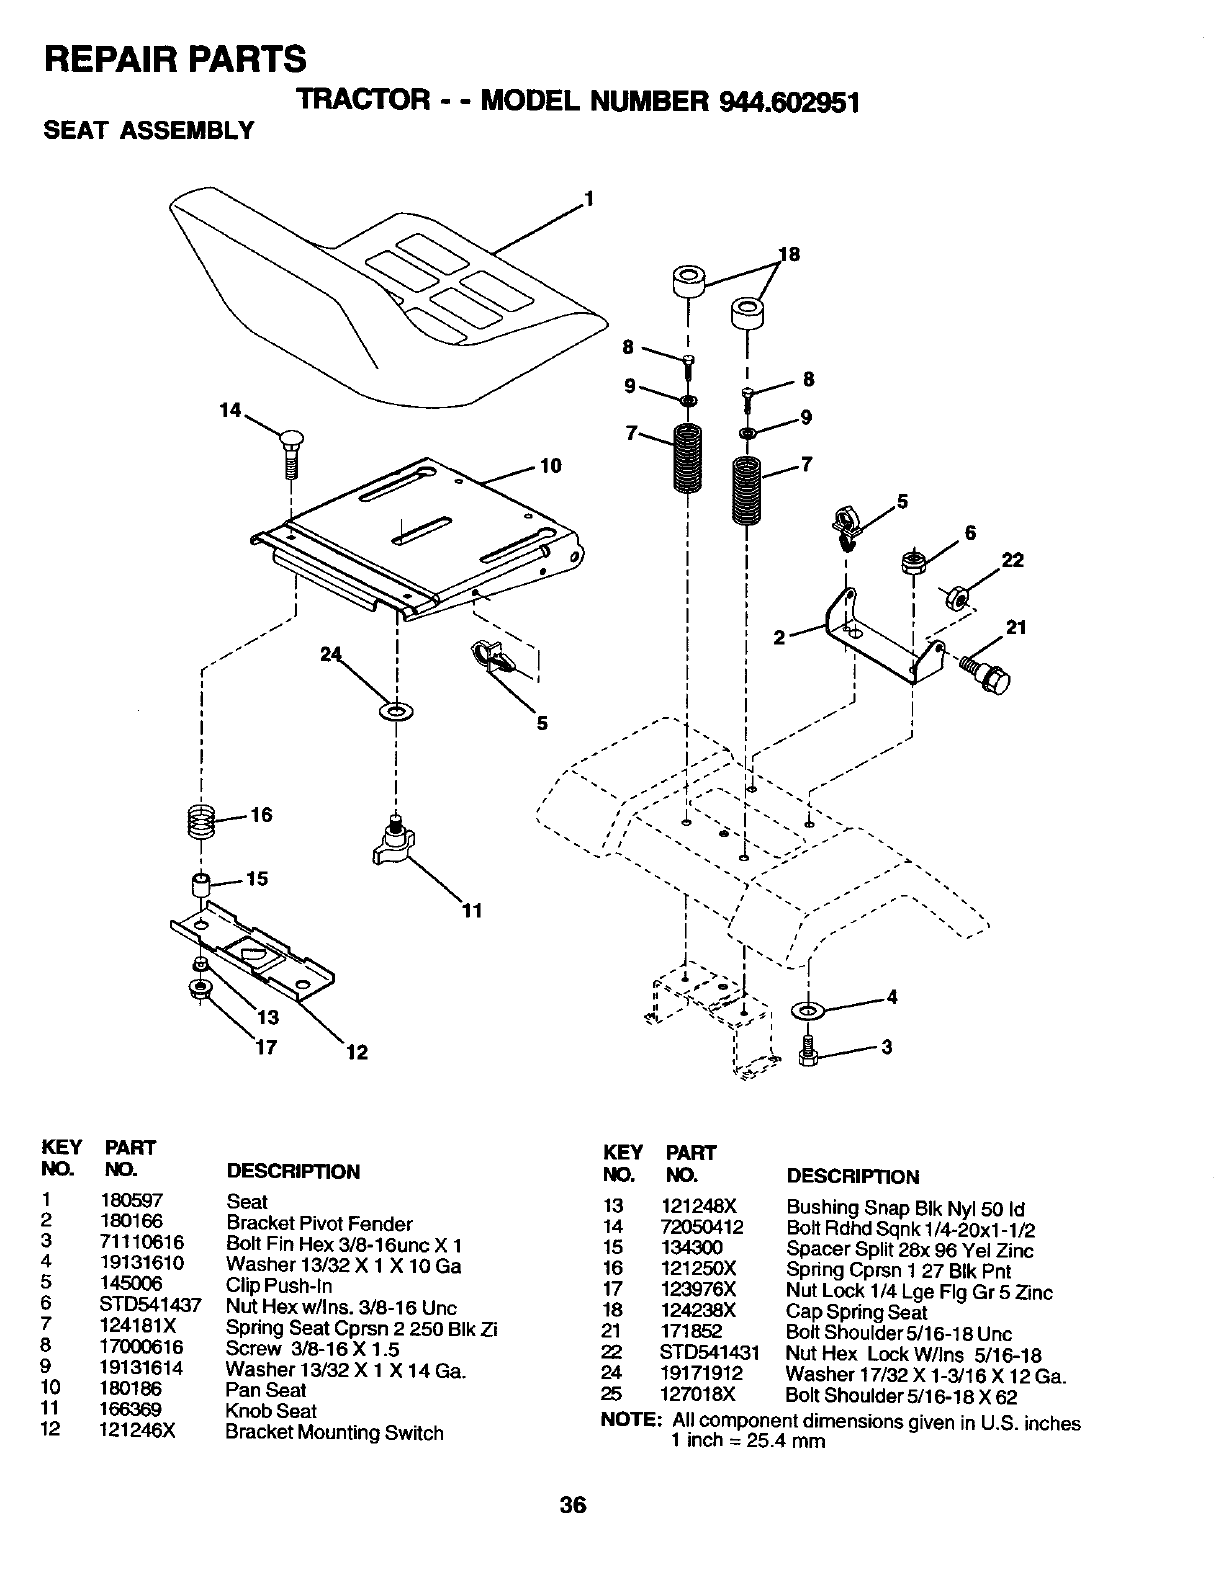 Page 36 of Craftsman Lawn Mower 944.602951 User Guide